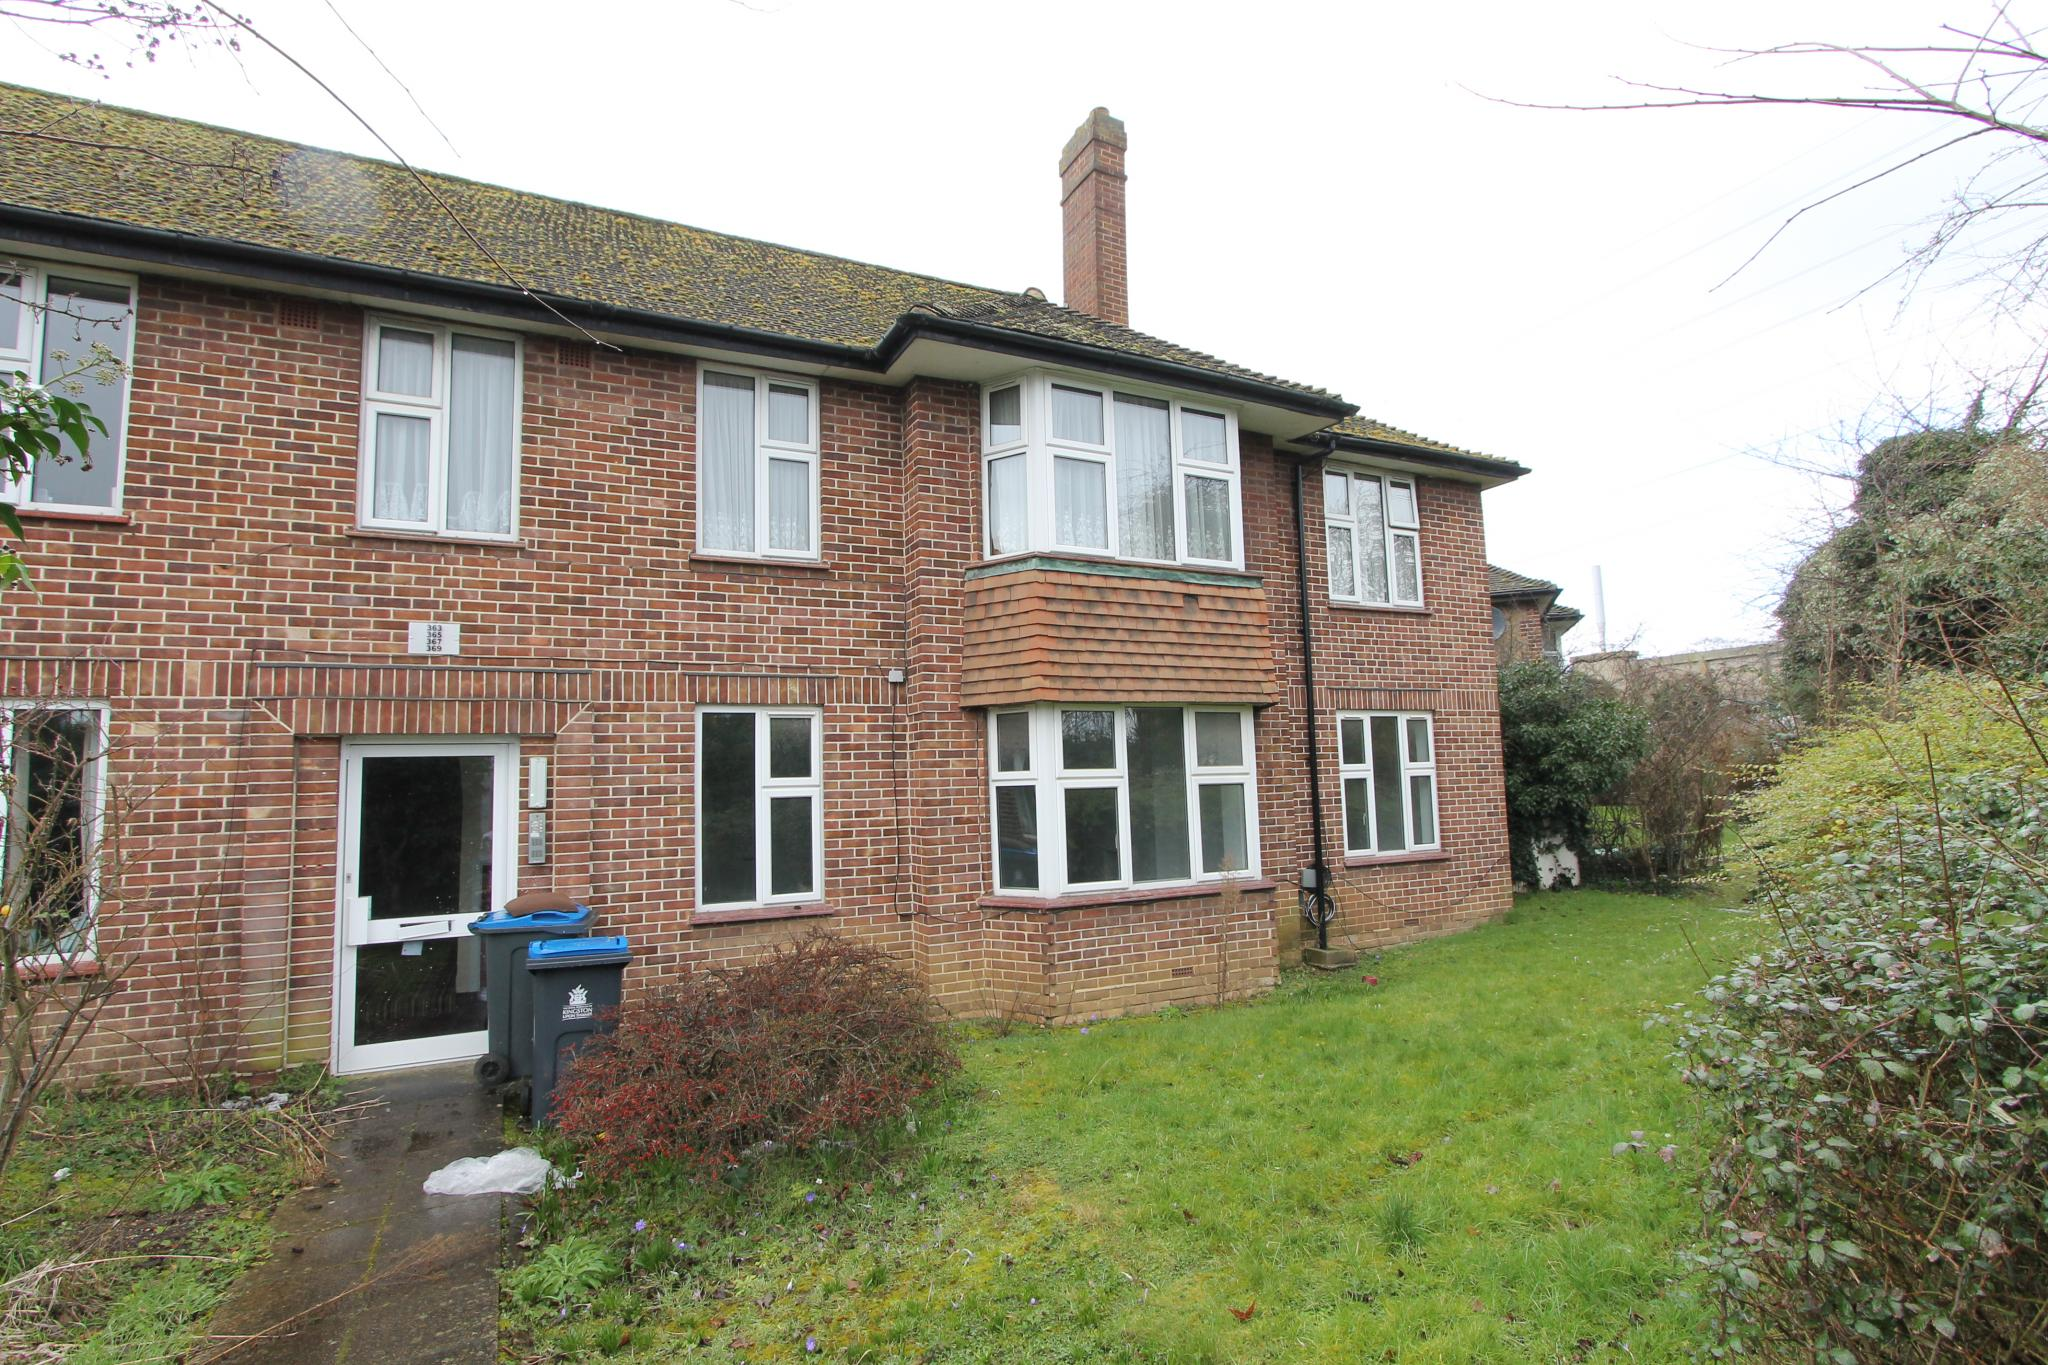 3 bedroom apartment flat/apartment Let Agreed in Worcester Park - Photograph 1.